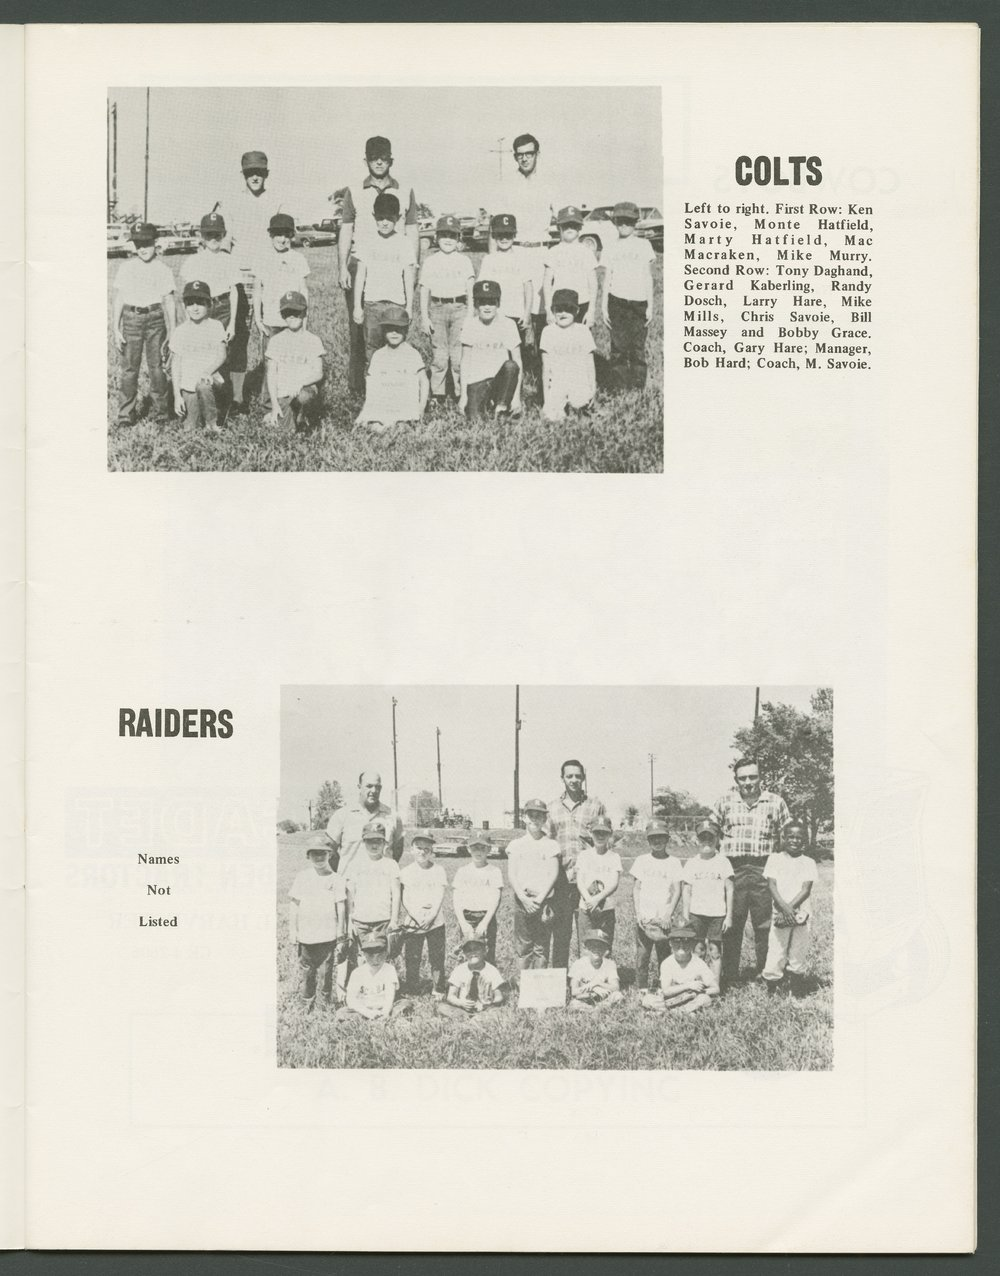 1969 SCABA baseball yearbook, Topeka, Kansas - 9